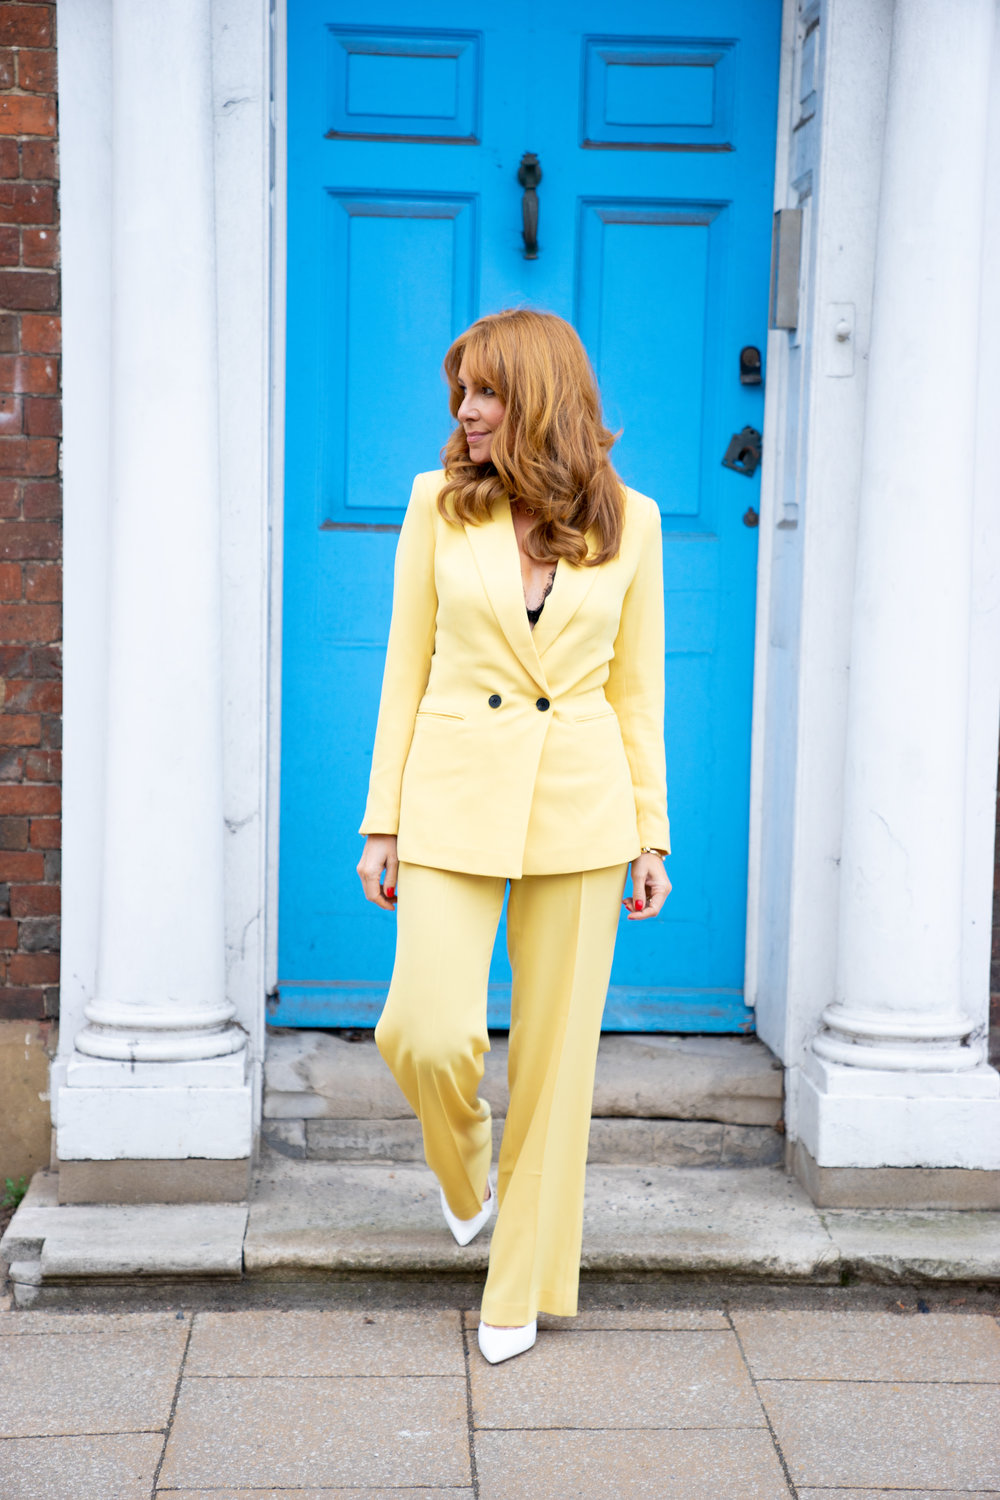 The Style Bible - The Sorbet Suit, Fashion blogger, Gel nails, High heels,